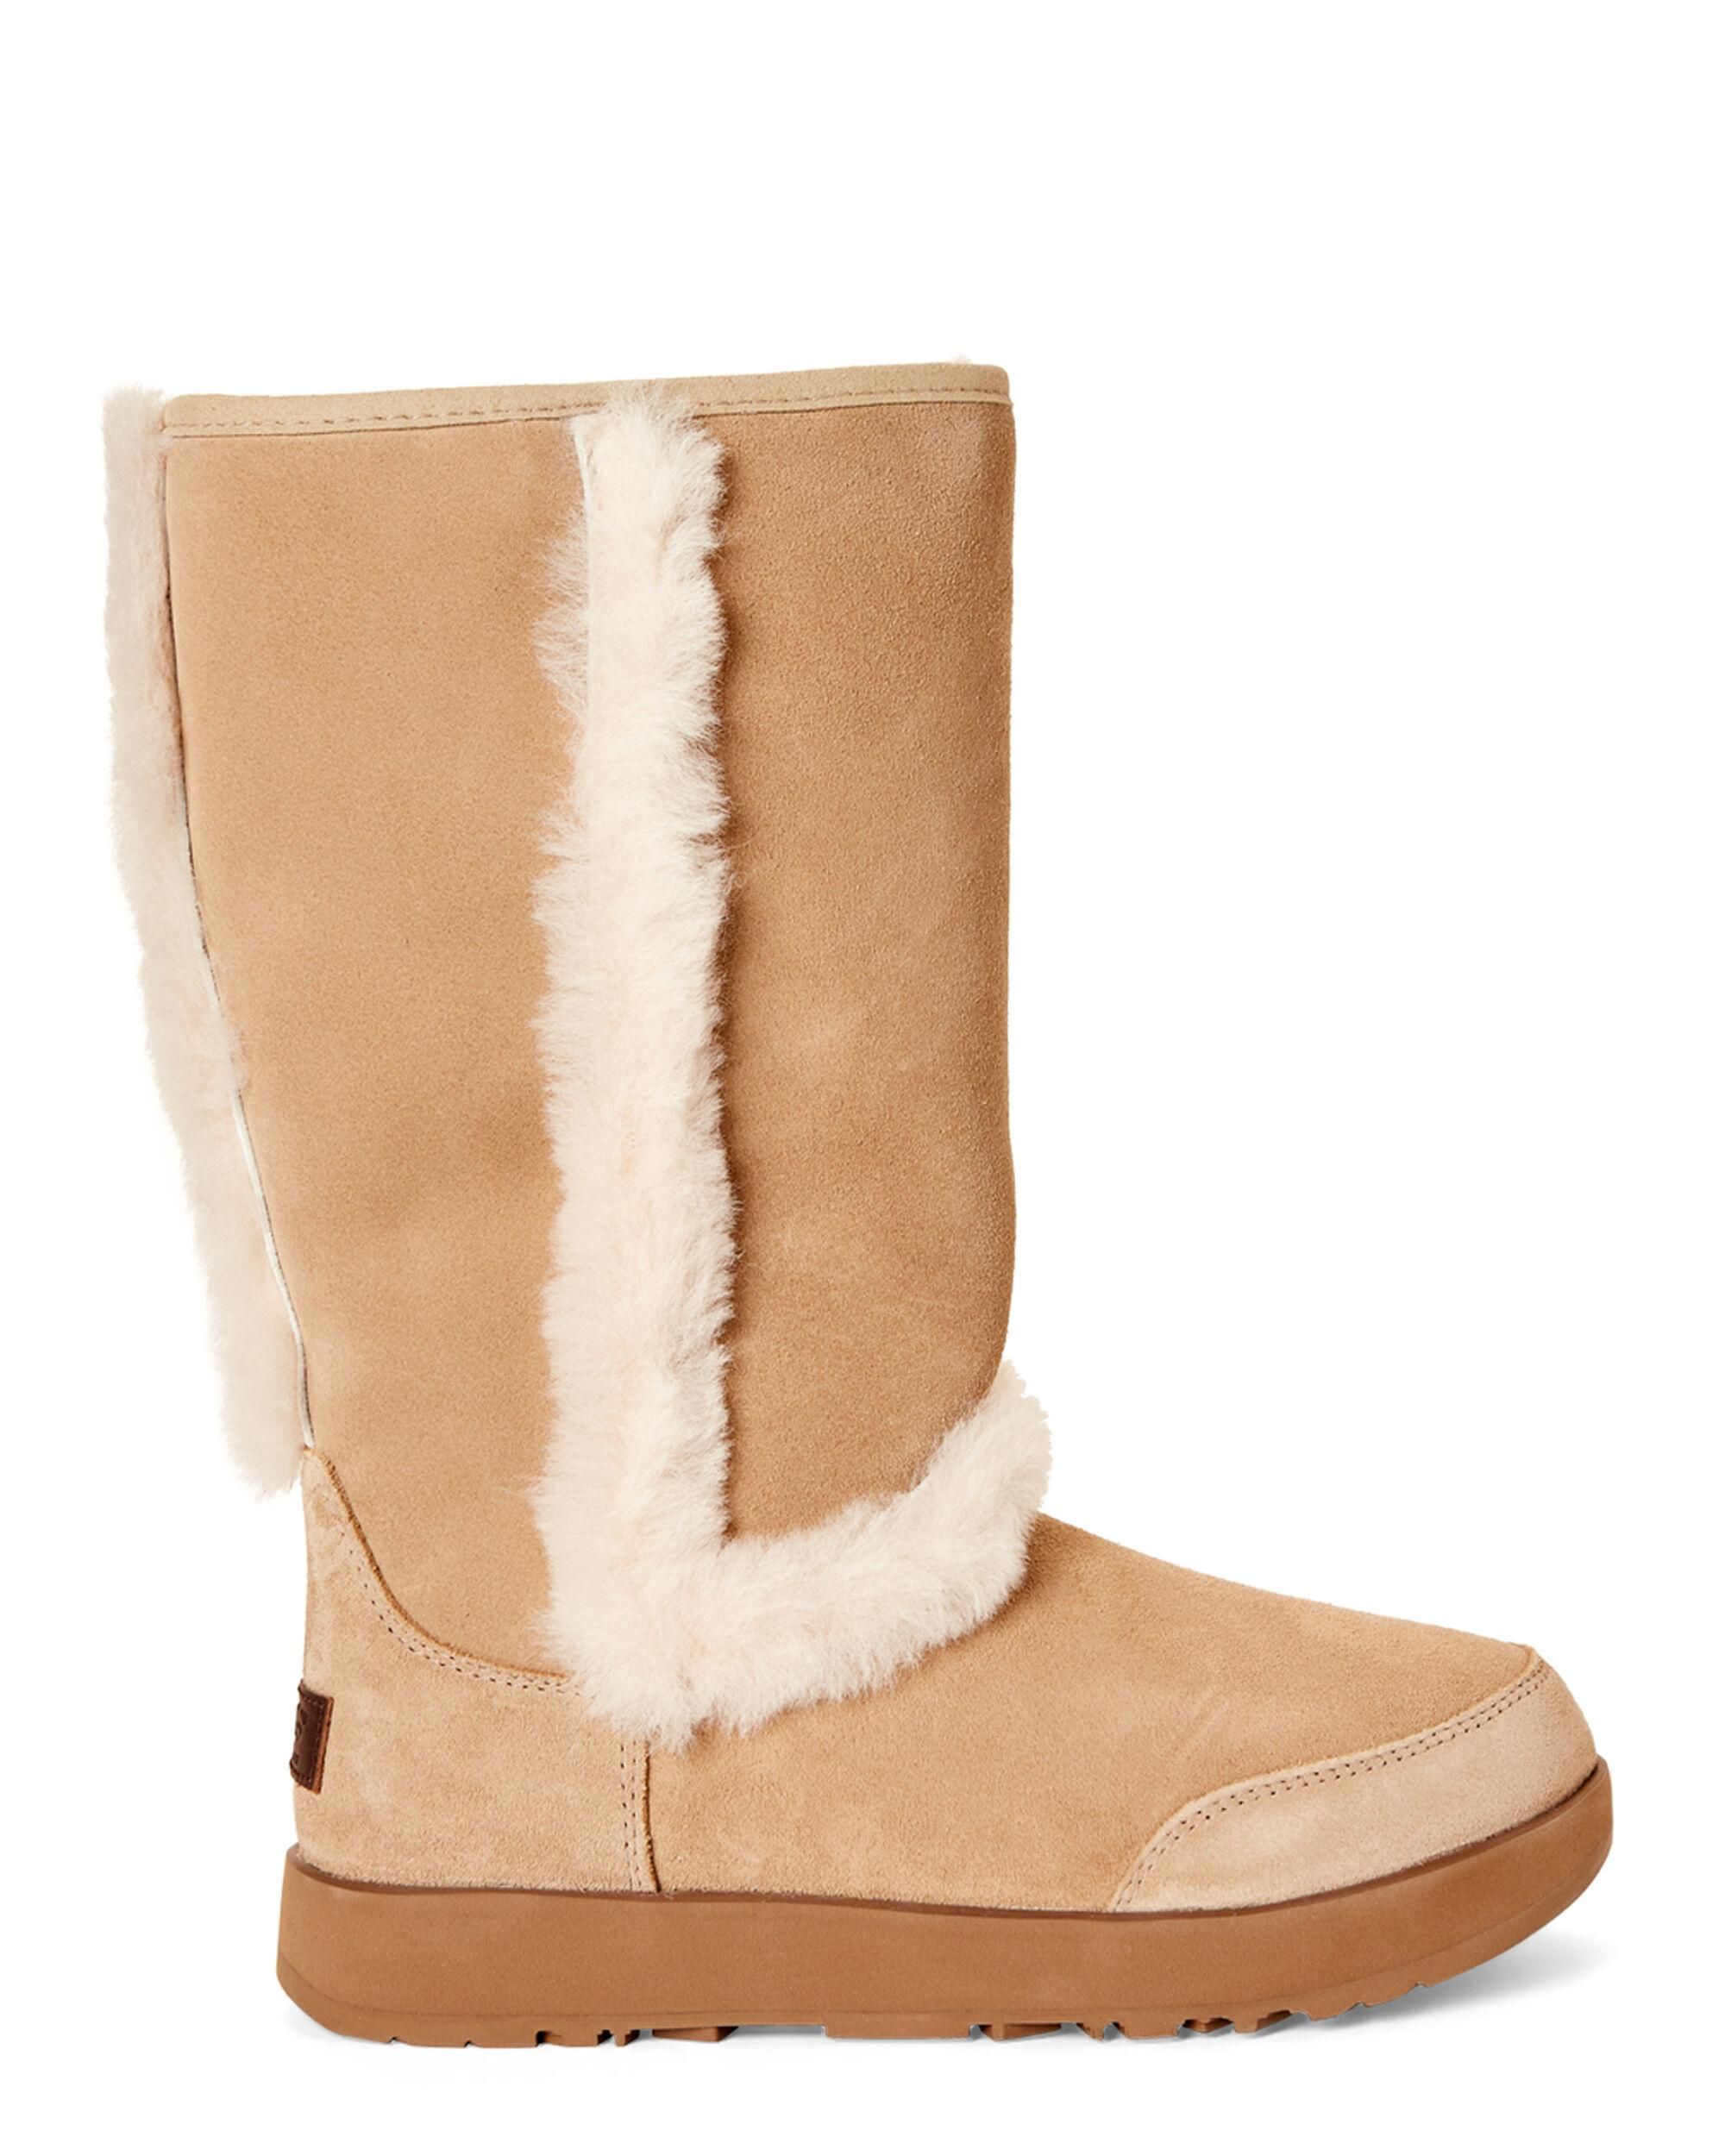 241a5fd074e UGG Sand Sundance Waterproof Real Fur Boots in Natural - Lyst